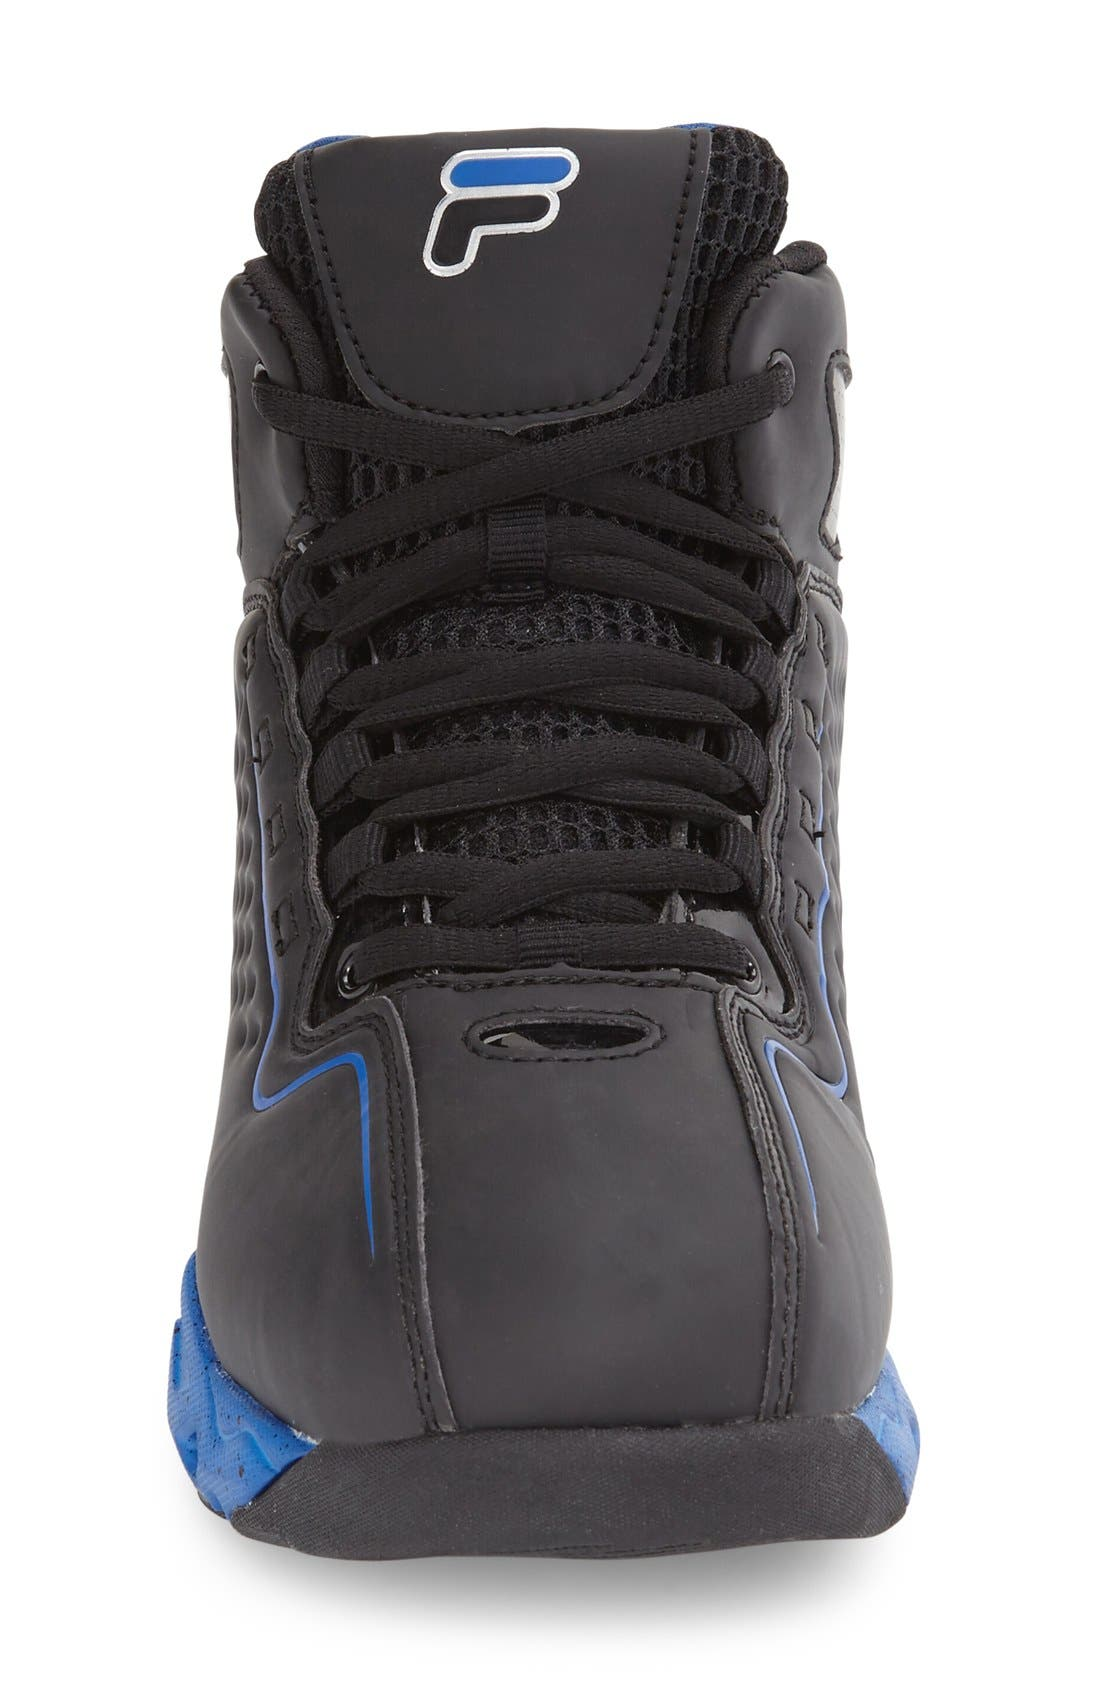 Big Bang High Top Sneaker,                             Alternate thumbnail 3, color,                             Black/ Prince Blue